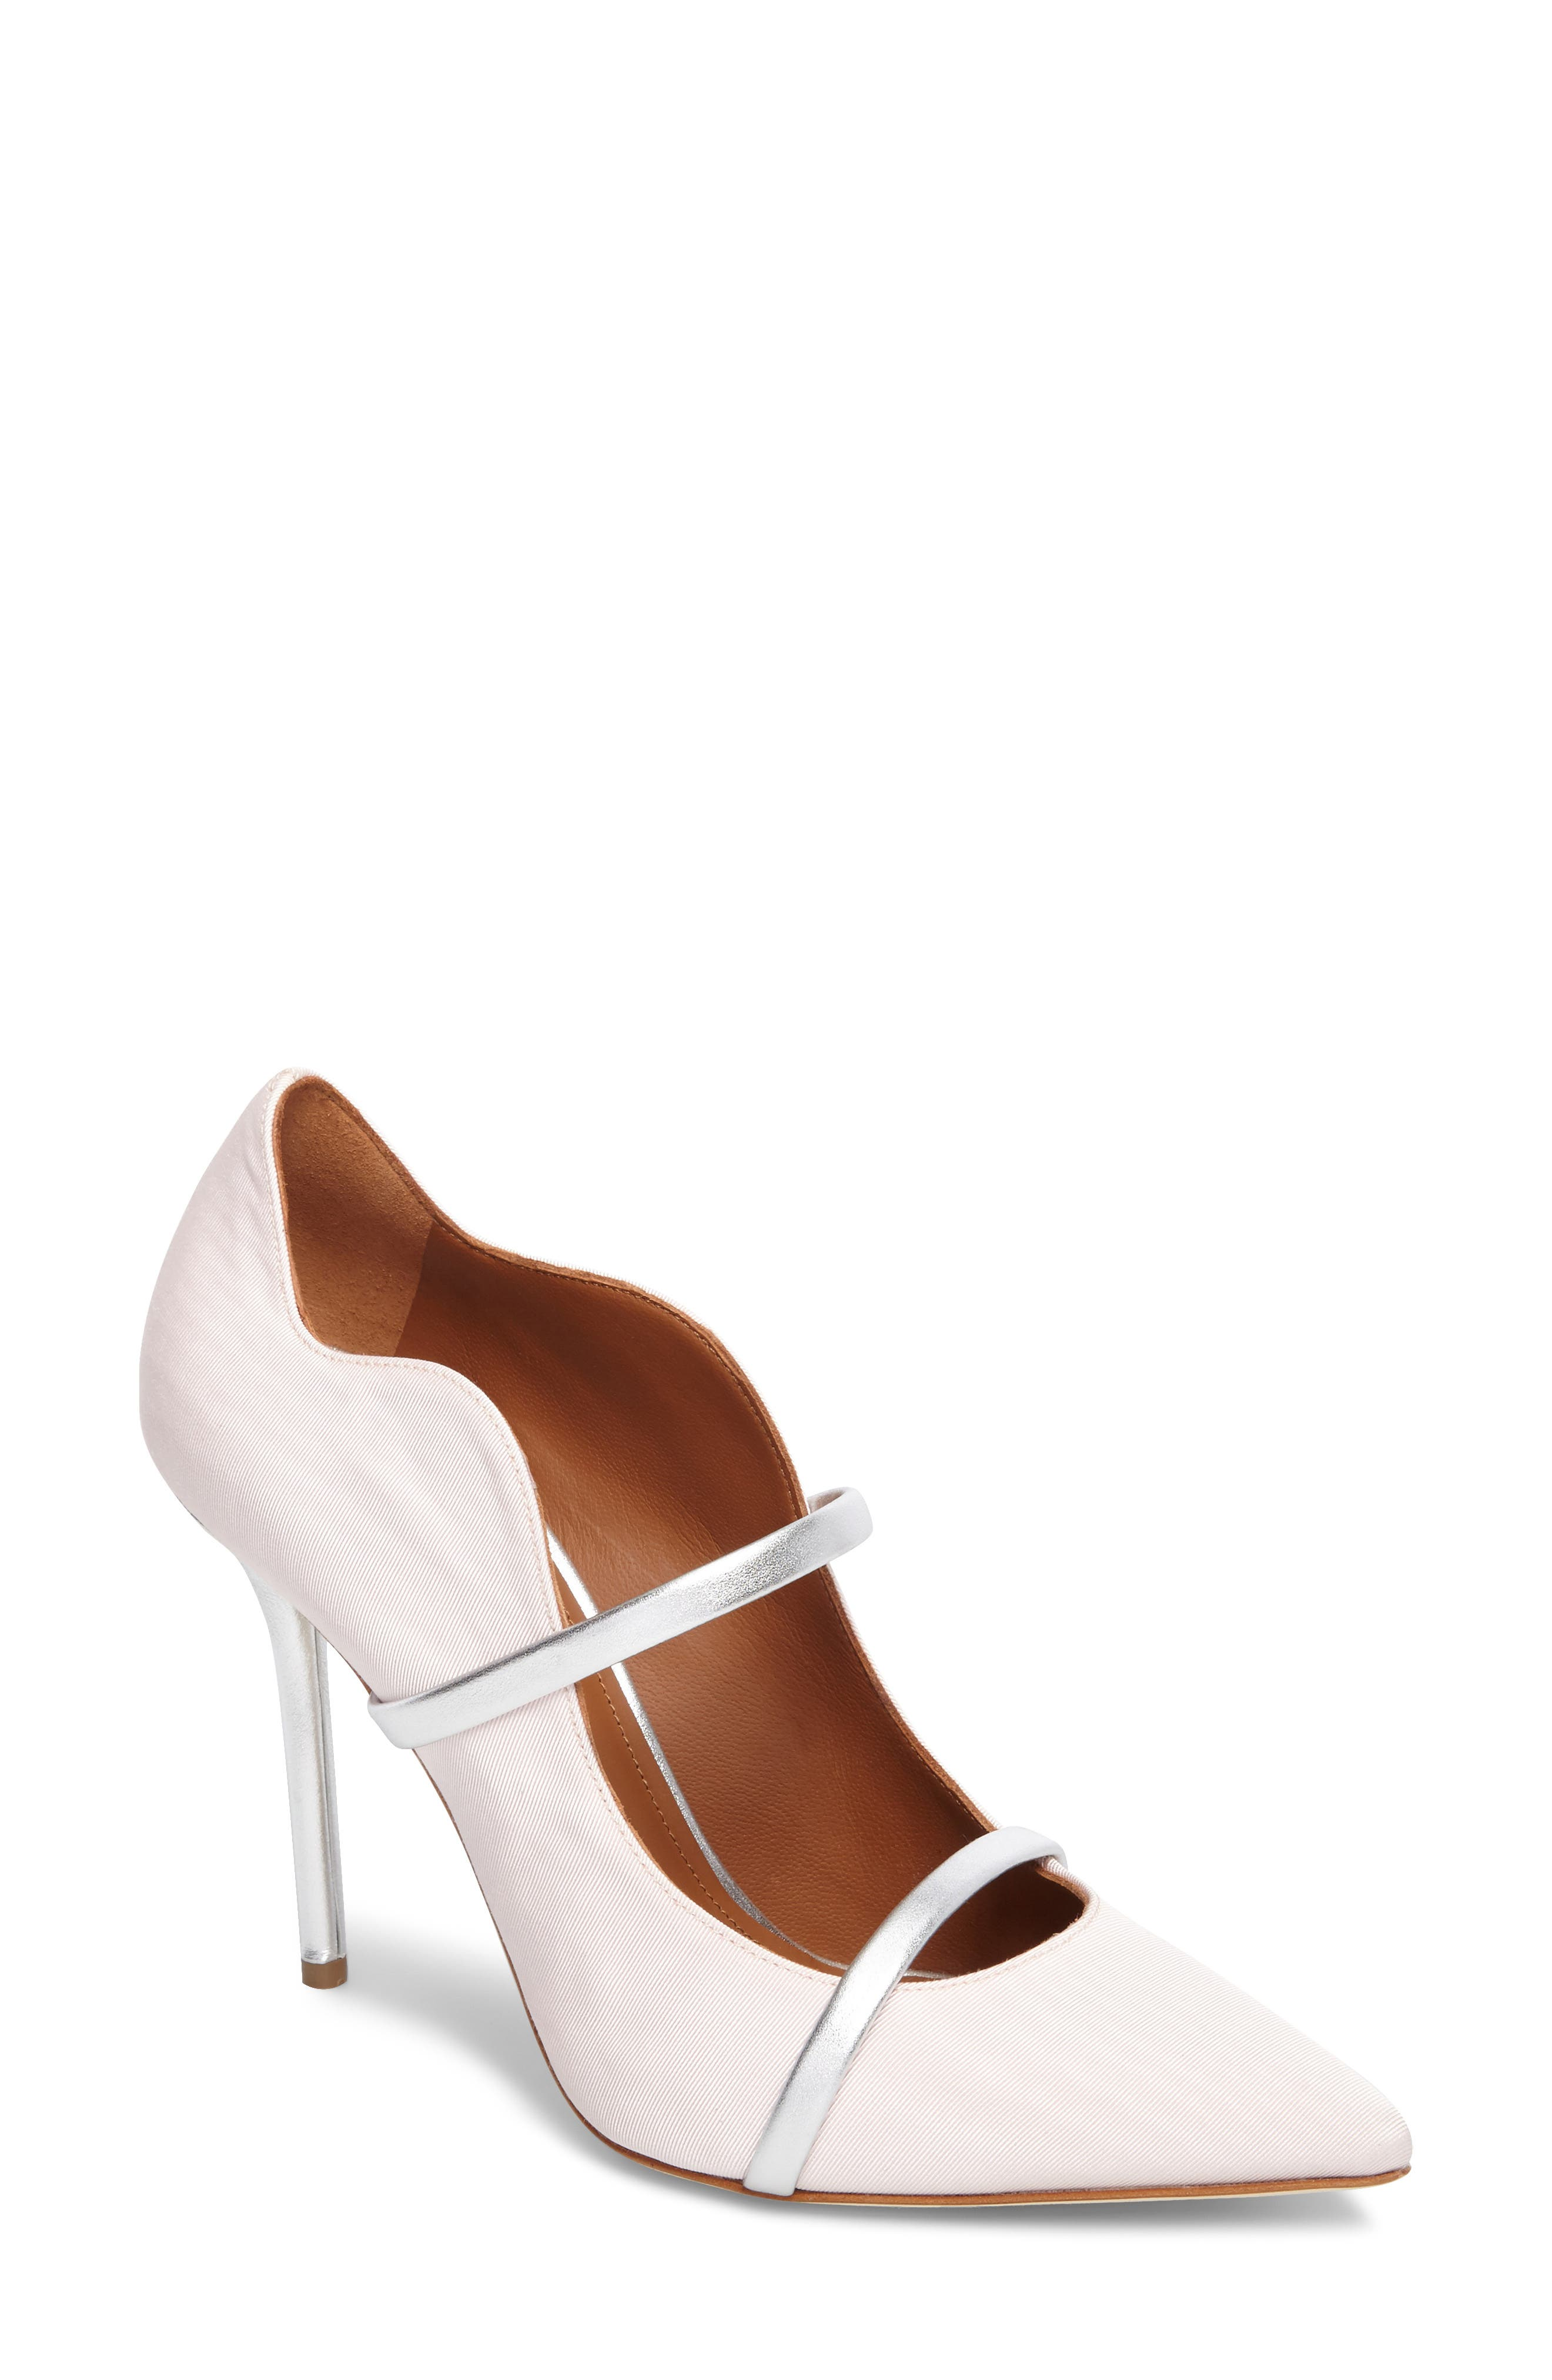 Maureen Double Band Pump,                         Main,                         color, Rose/ Silver